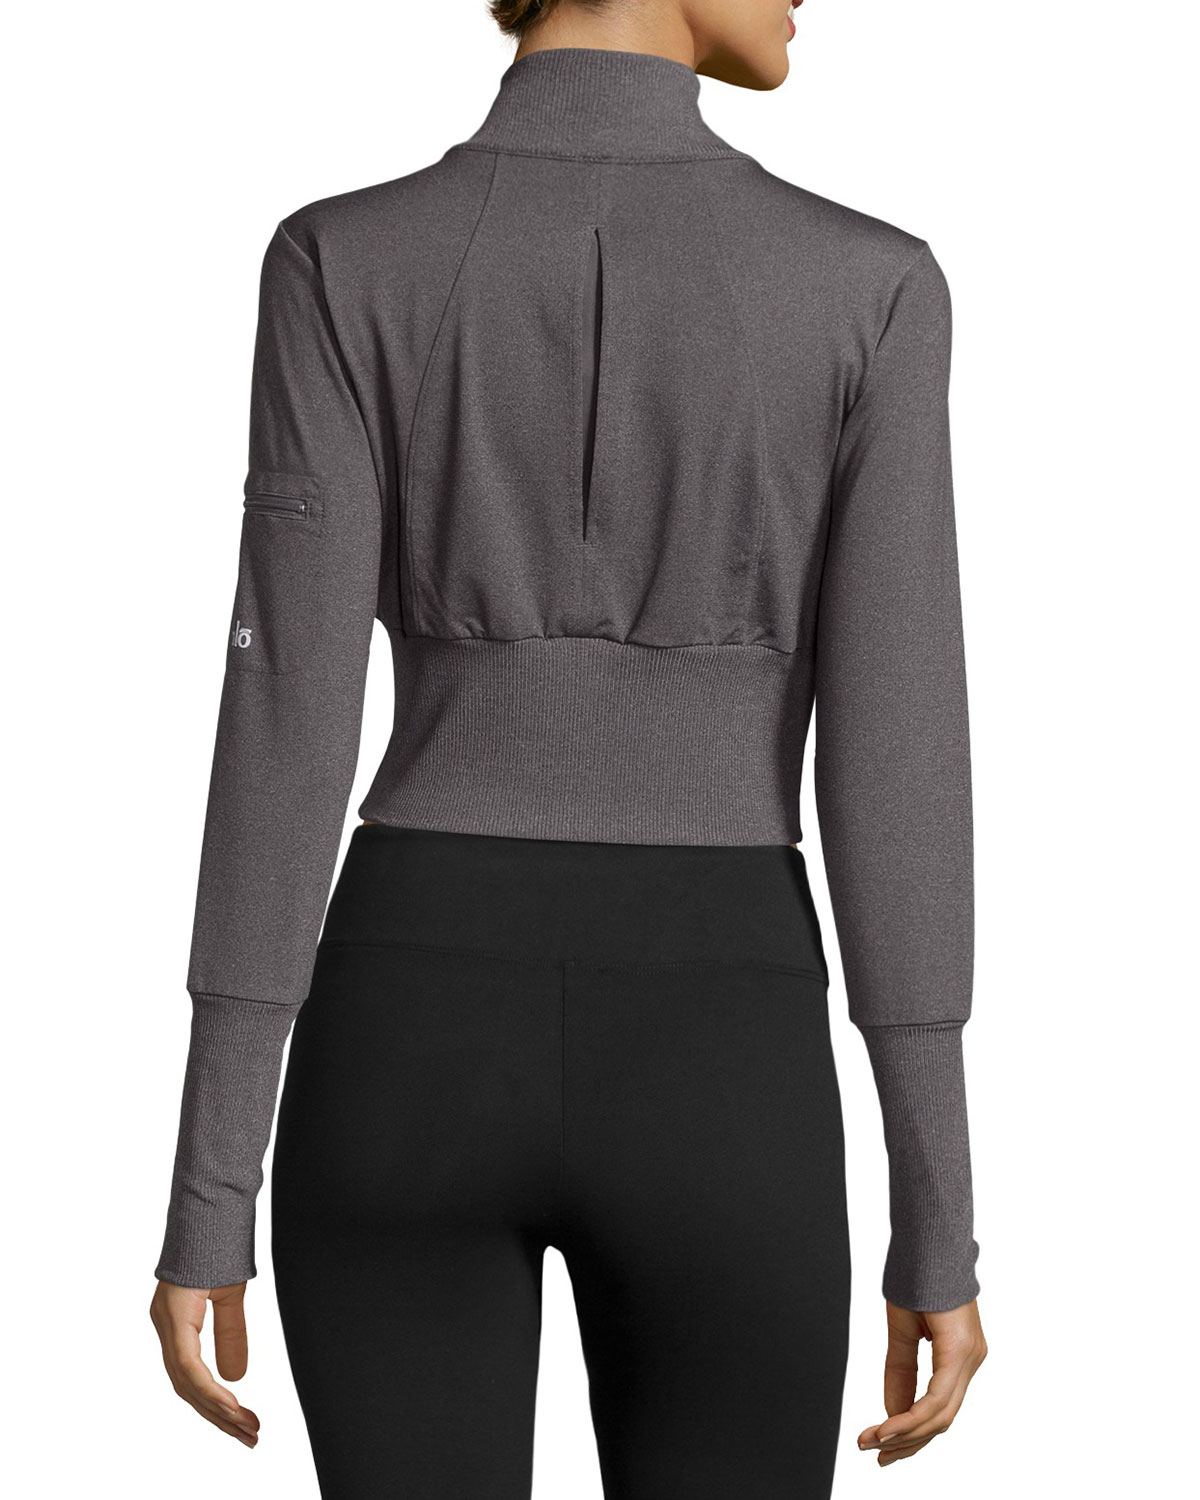 Find a large selection of Women's Yoga Jackets at forex-trade1.ga Free shipping on $75+, Low Price Guarantee. 24/7 Customer Service.